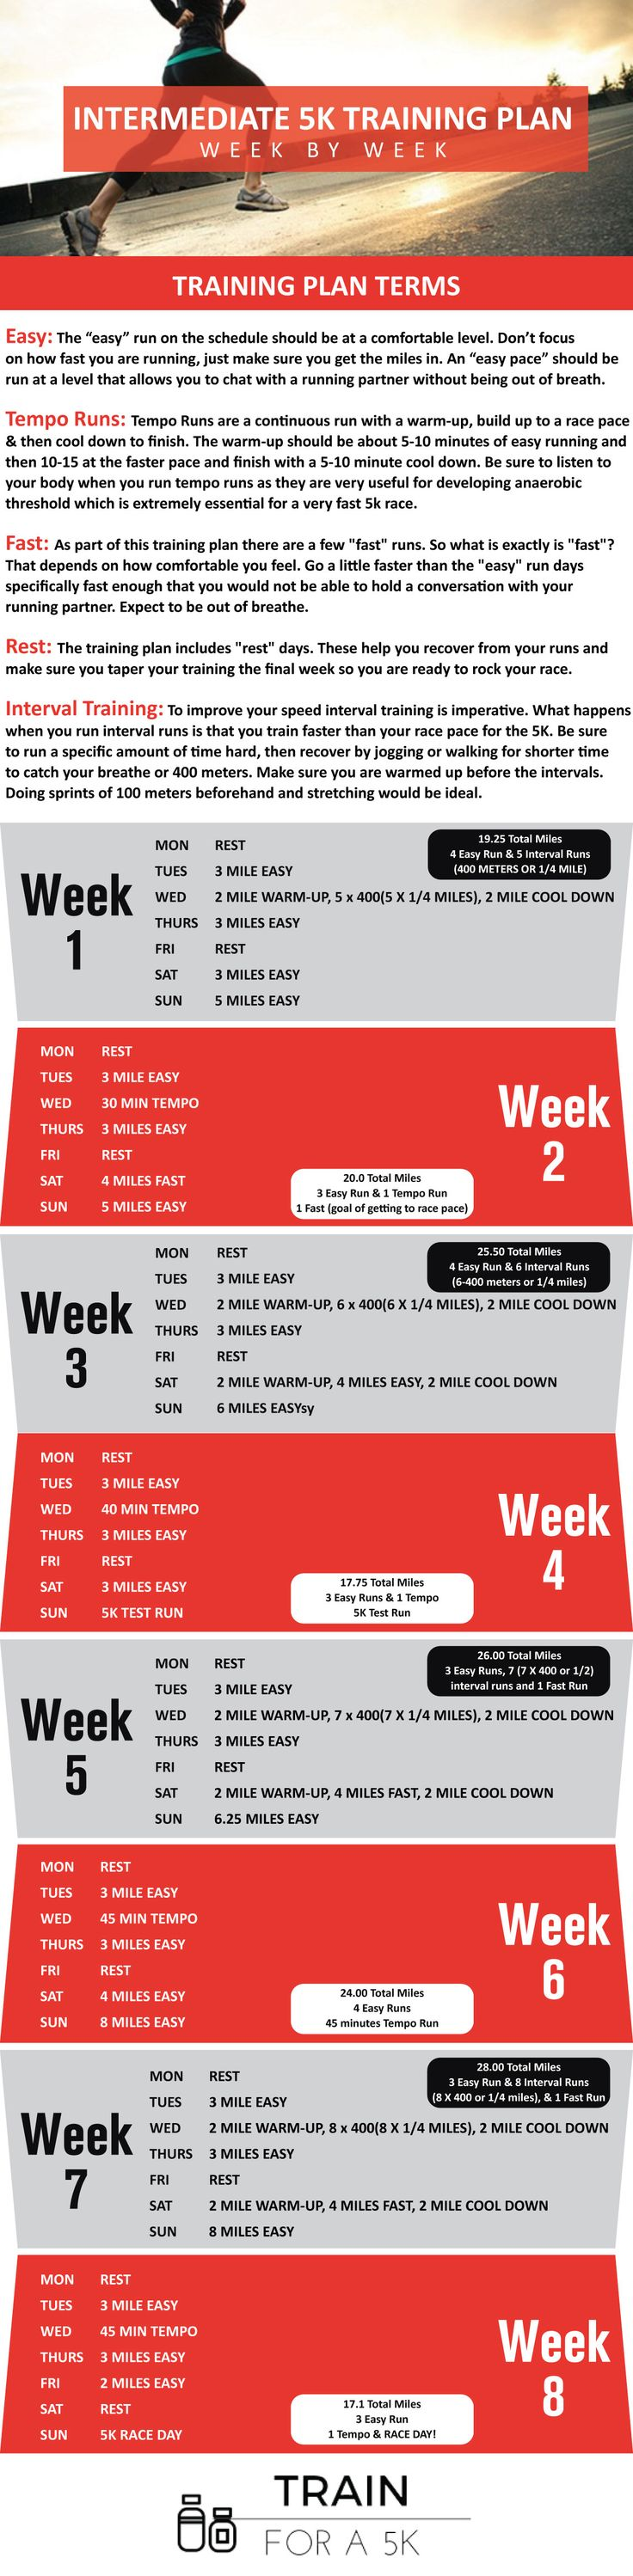 This Intermediate 5K training plan is designed for runners who are looking to finish at specific time. It's designed for runners who are finishing 5K's under 25 minutes. This training plan offers interval training days, short runs and longer runs to help you build stamina. This training plan was developed to help you hit a target time goal.